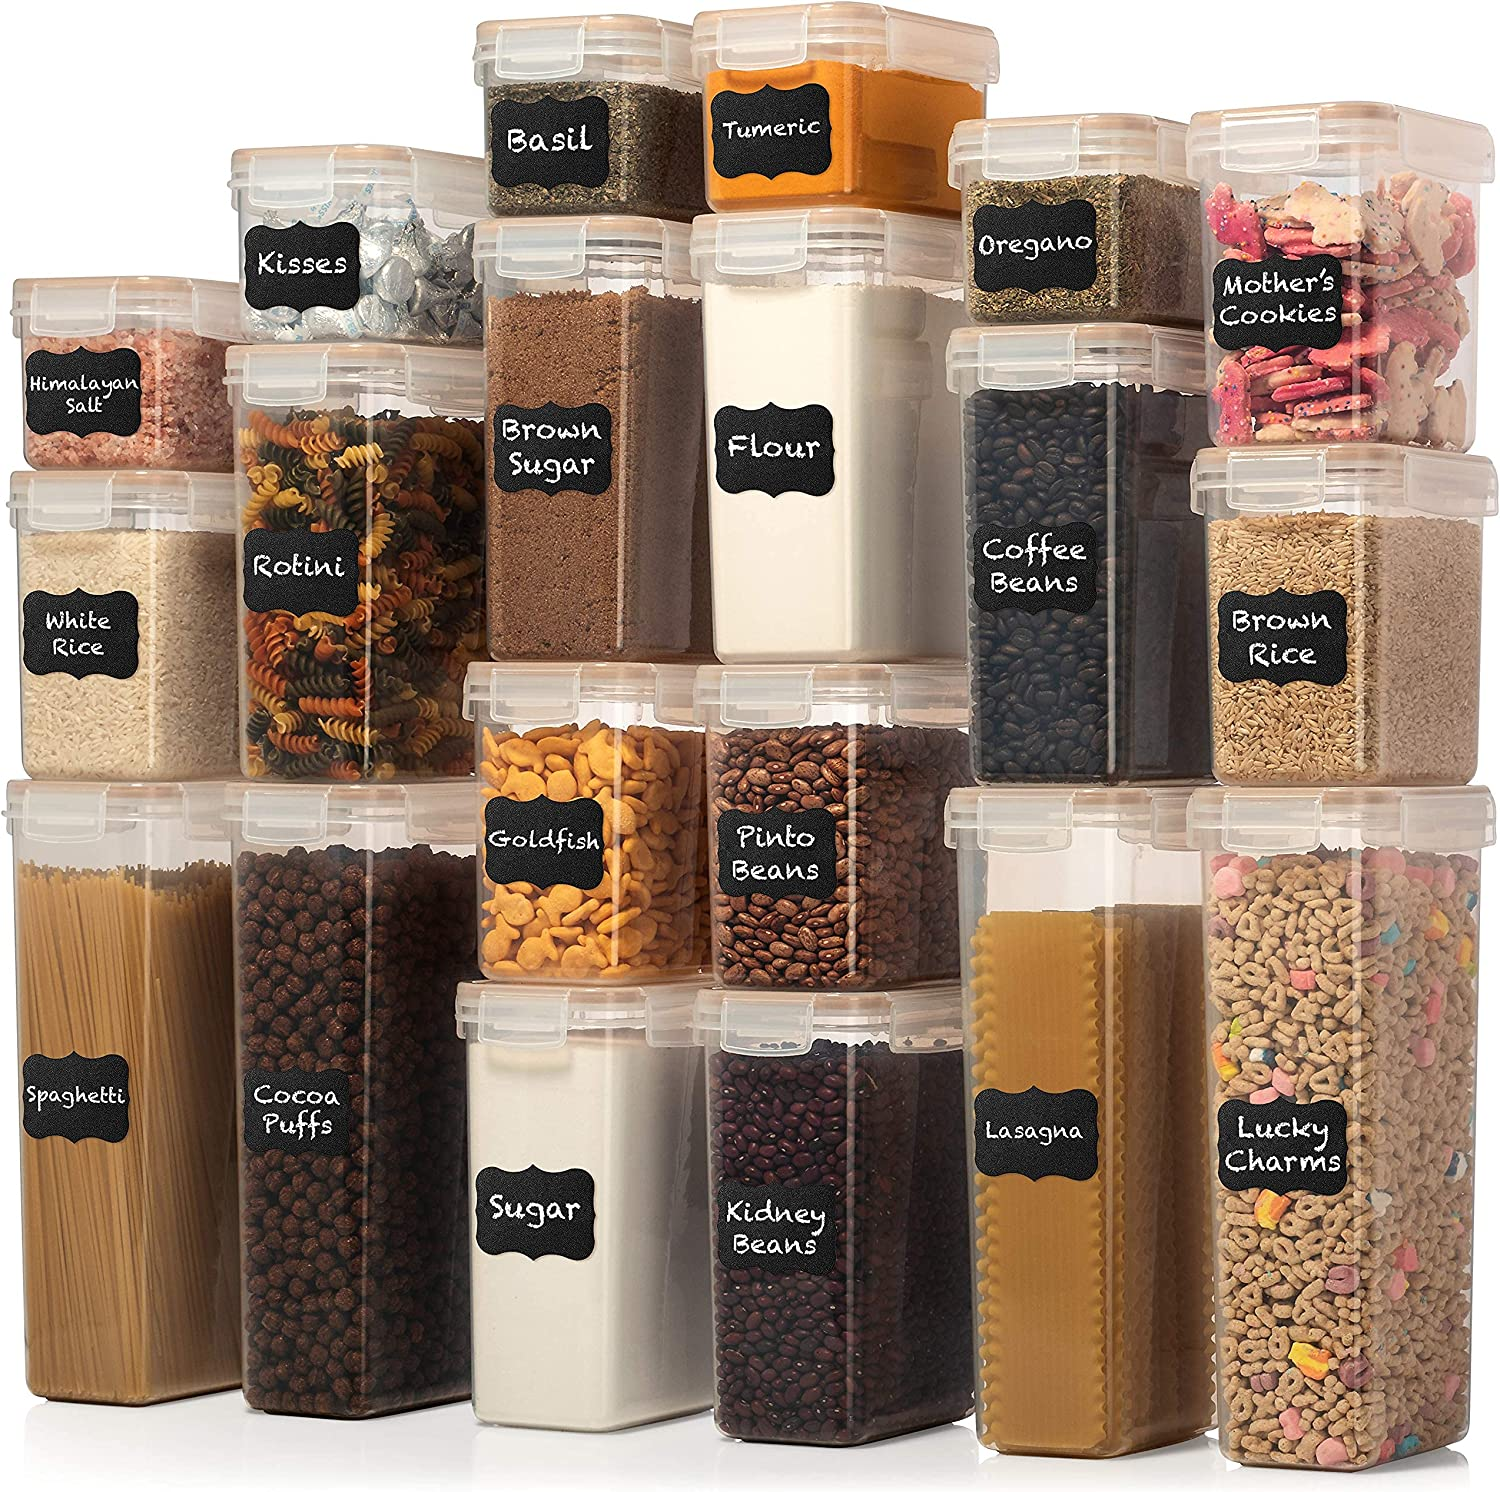 LARGE SET Airtight Food Storage Container Set - 20 PC - Kitchen & Pantry Organization - BPA-Free - Plastic Canisters with Durable Lids Ideal for Cereal, Flour & Sugar - Labels, Marker